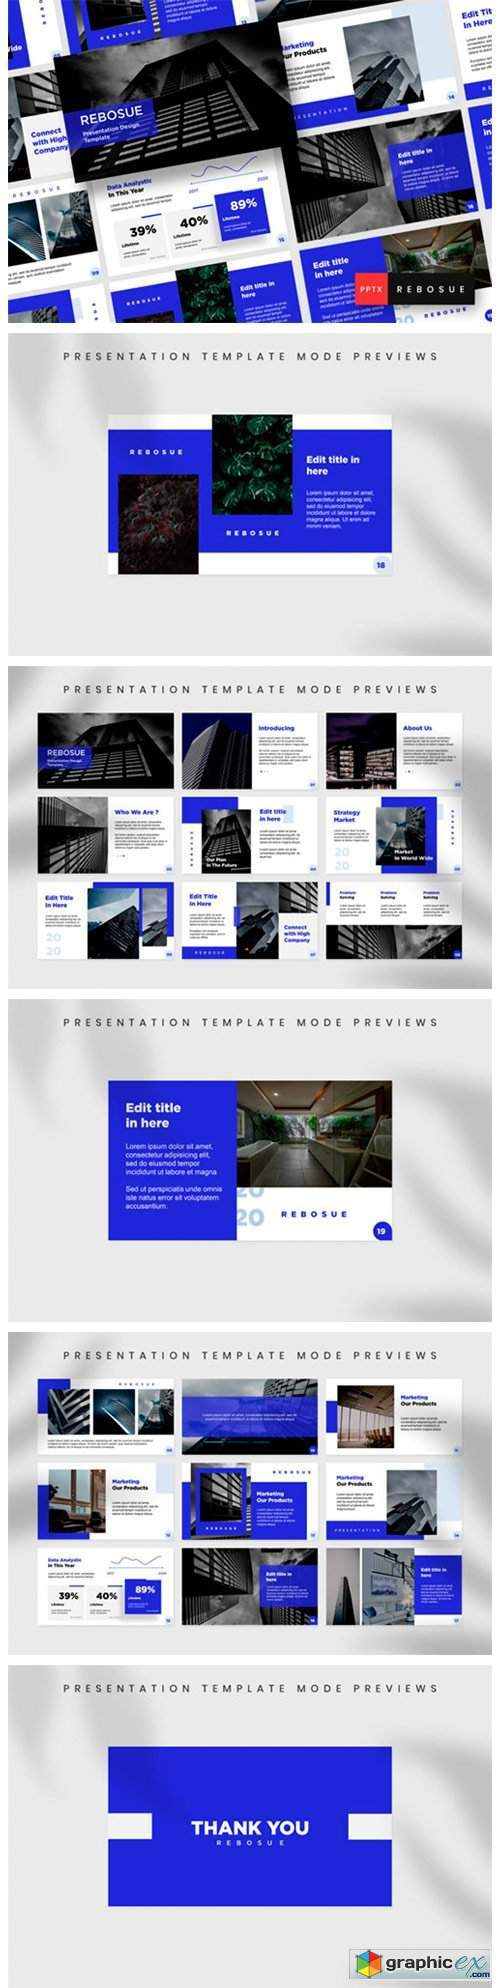 Presentation Design Template - Rebosue